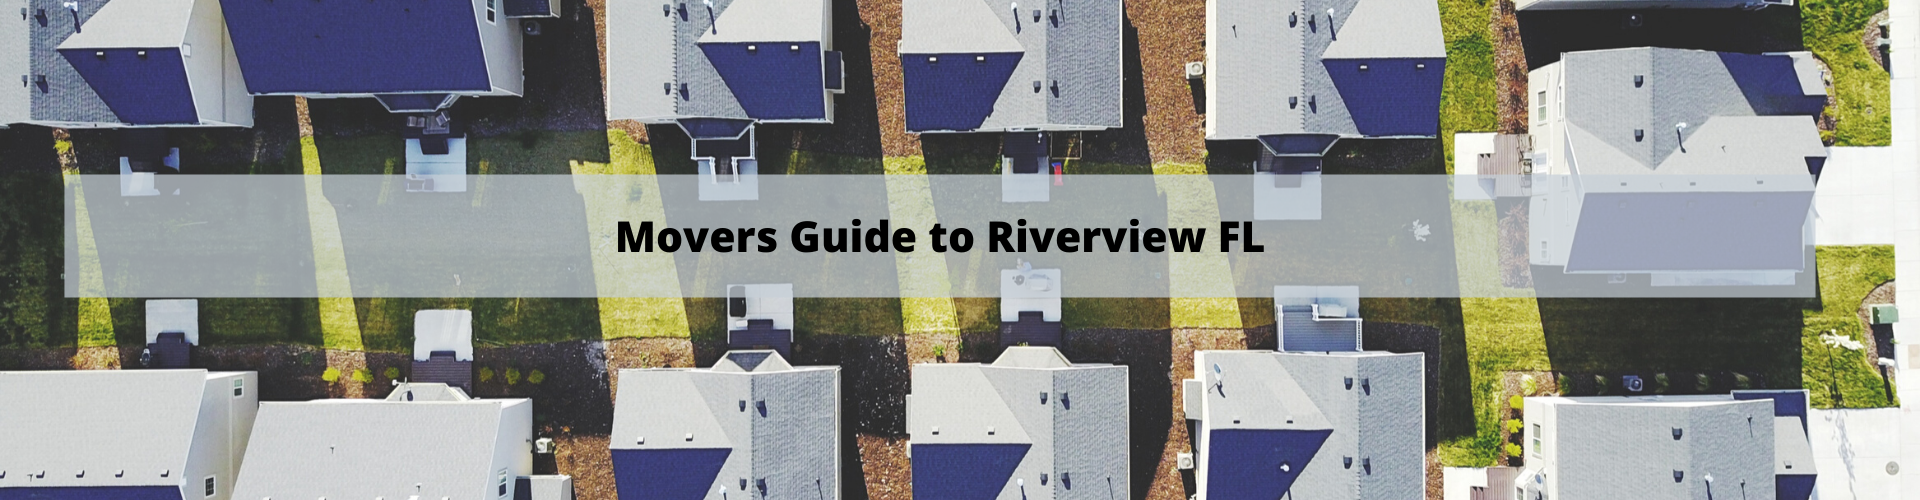 Movers Guide To Riverview FL